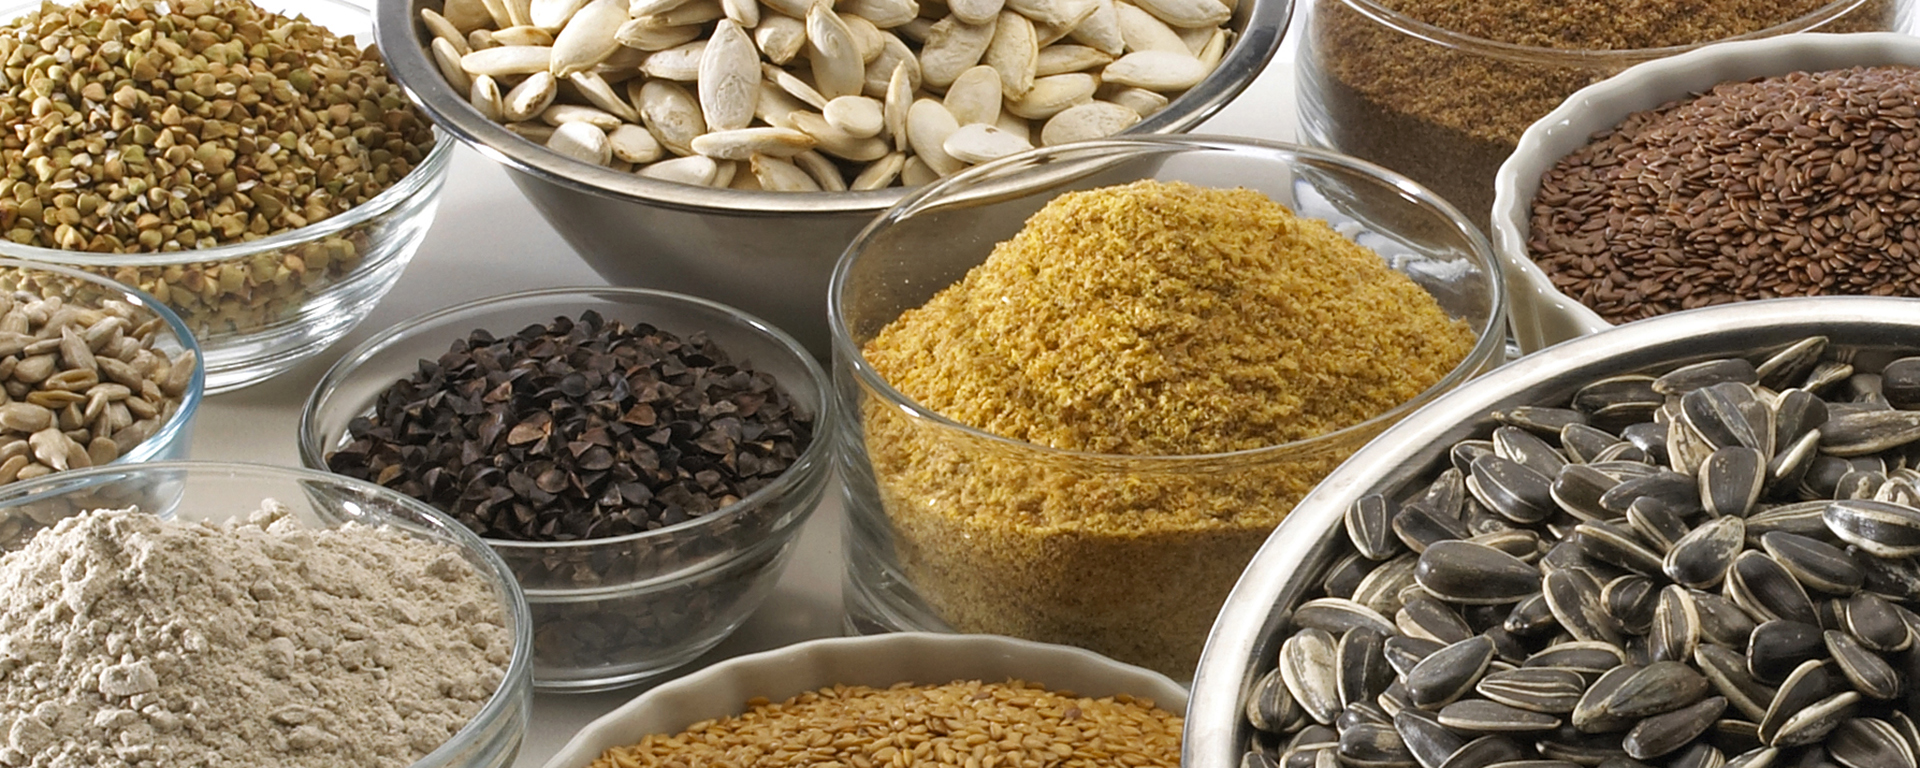 Food Ingredients, 1920x768, soybeans, sunflowers seeds, Food, Wheat Flour